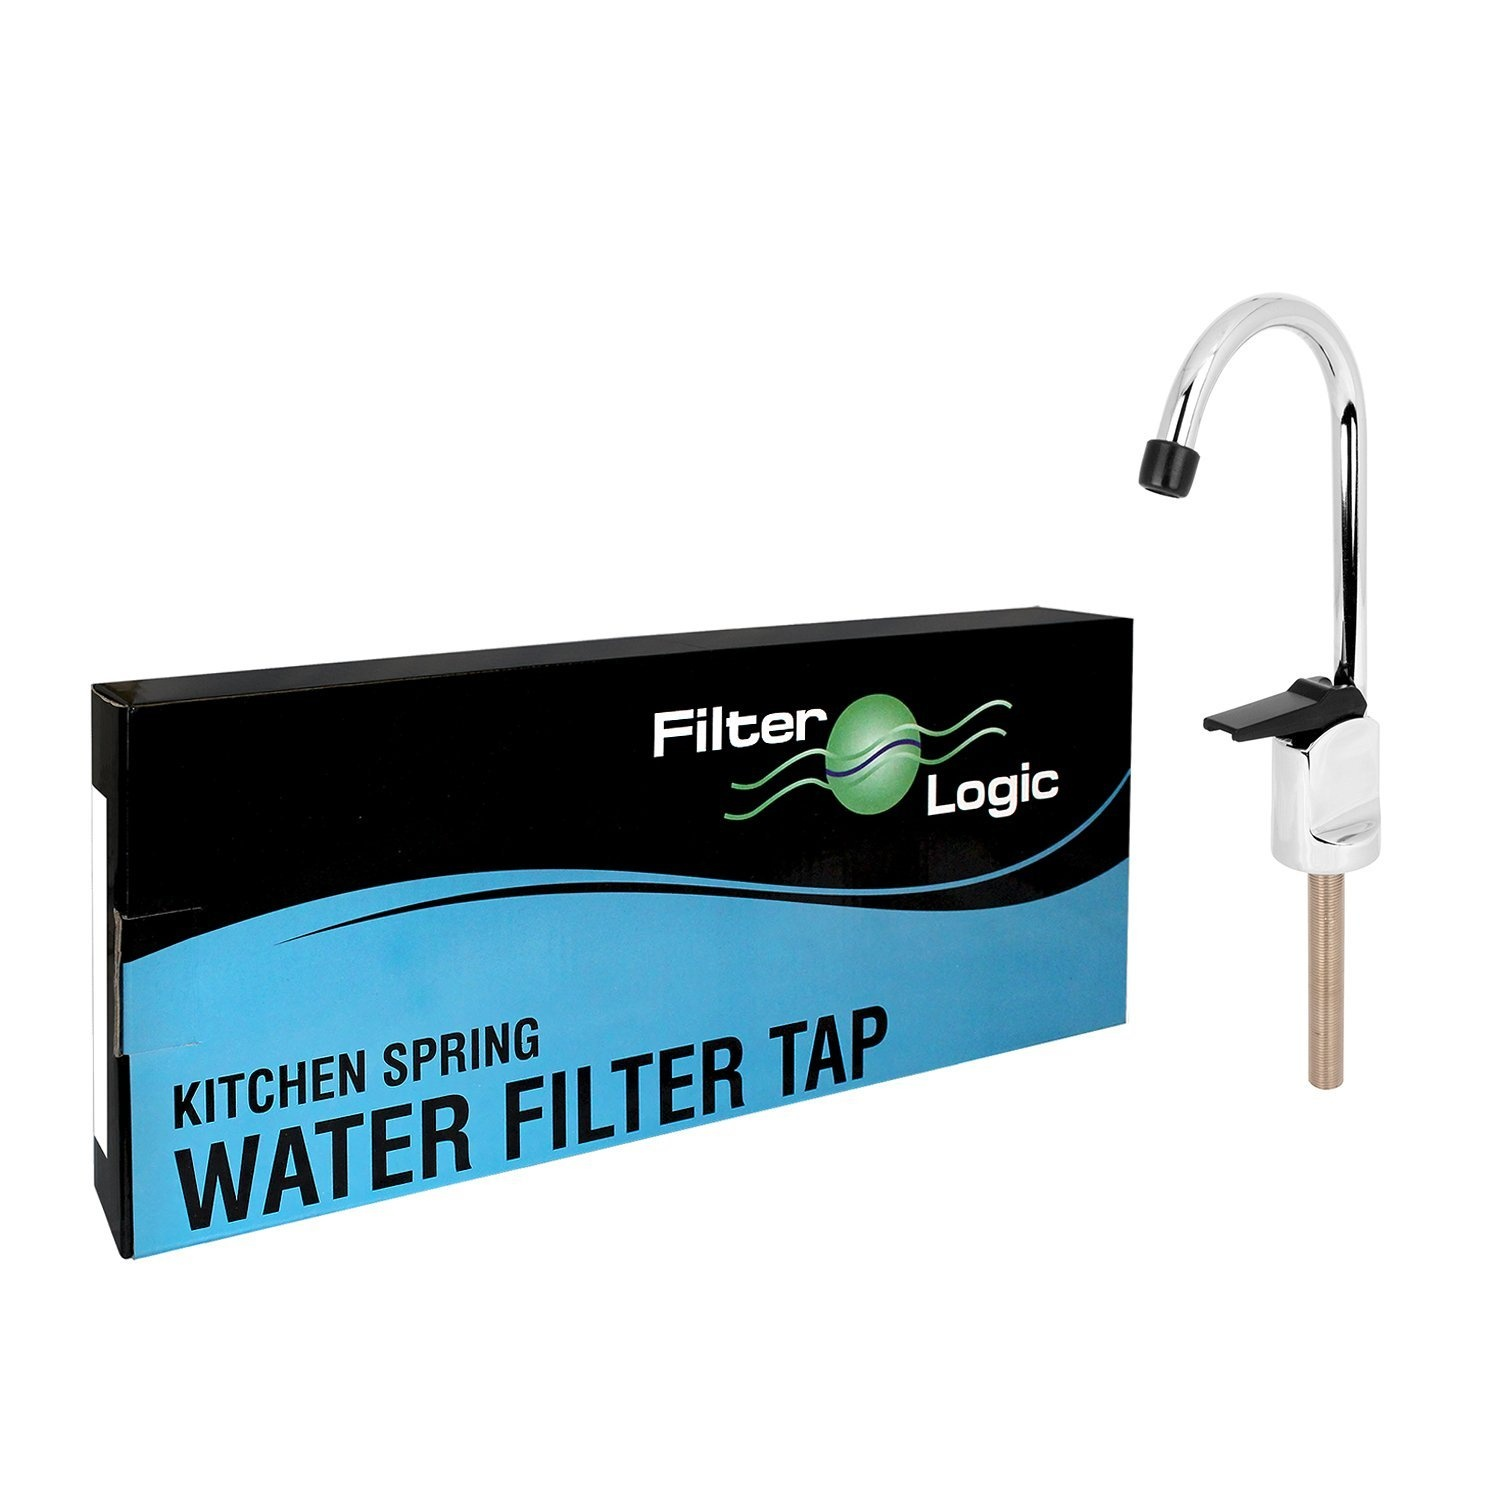 Filterlogic Faucet Kitchen Sink Drinking Water Filter Touch Tap Button Lever Stainless Steel Standard Spout Chrome